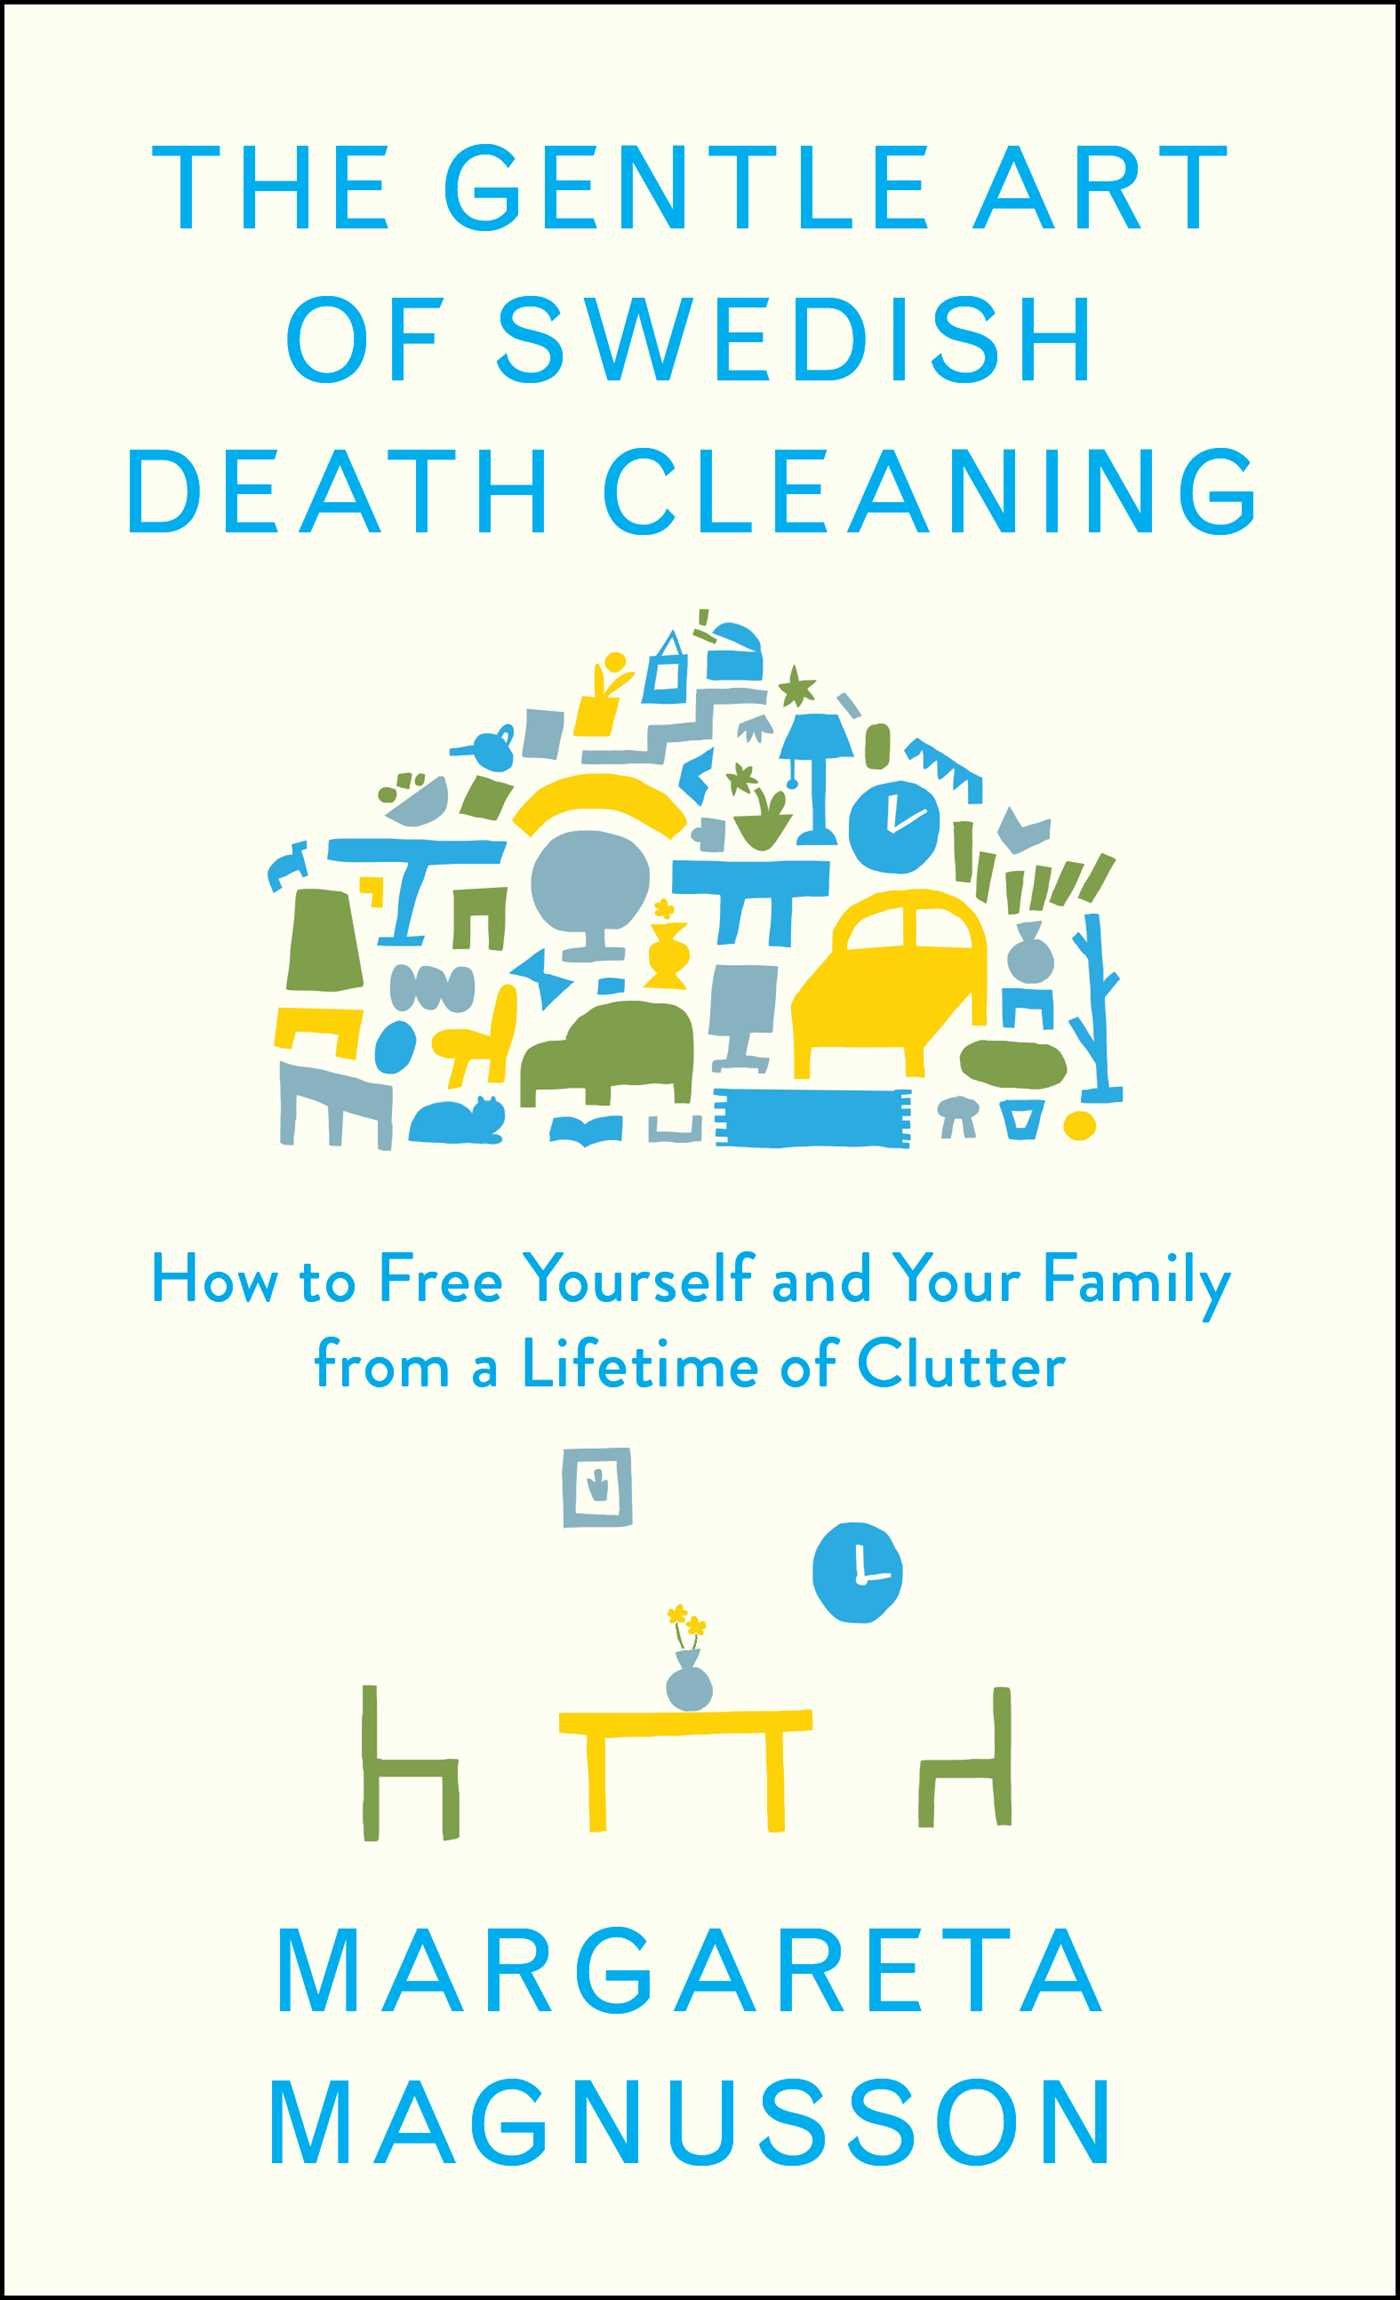 The gentle art of swedish death cleaning how to free yourself and the gentle art of swedish death cleaning how to free yourself and your family from a lifetime of clutter margareta magnusson 9781501173240 amazon fandeluxe Gallery